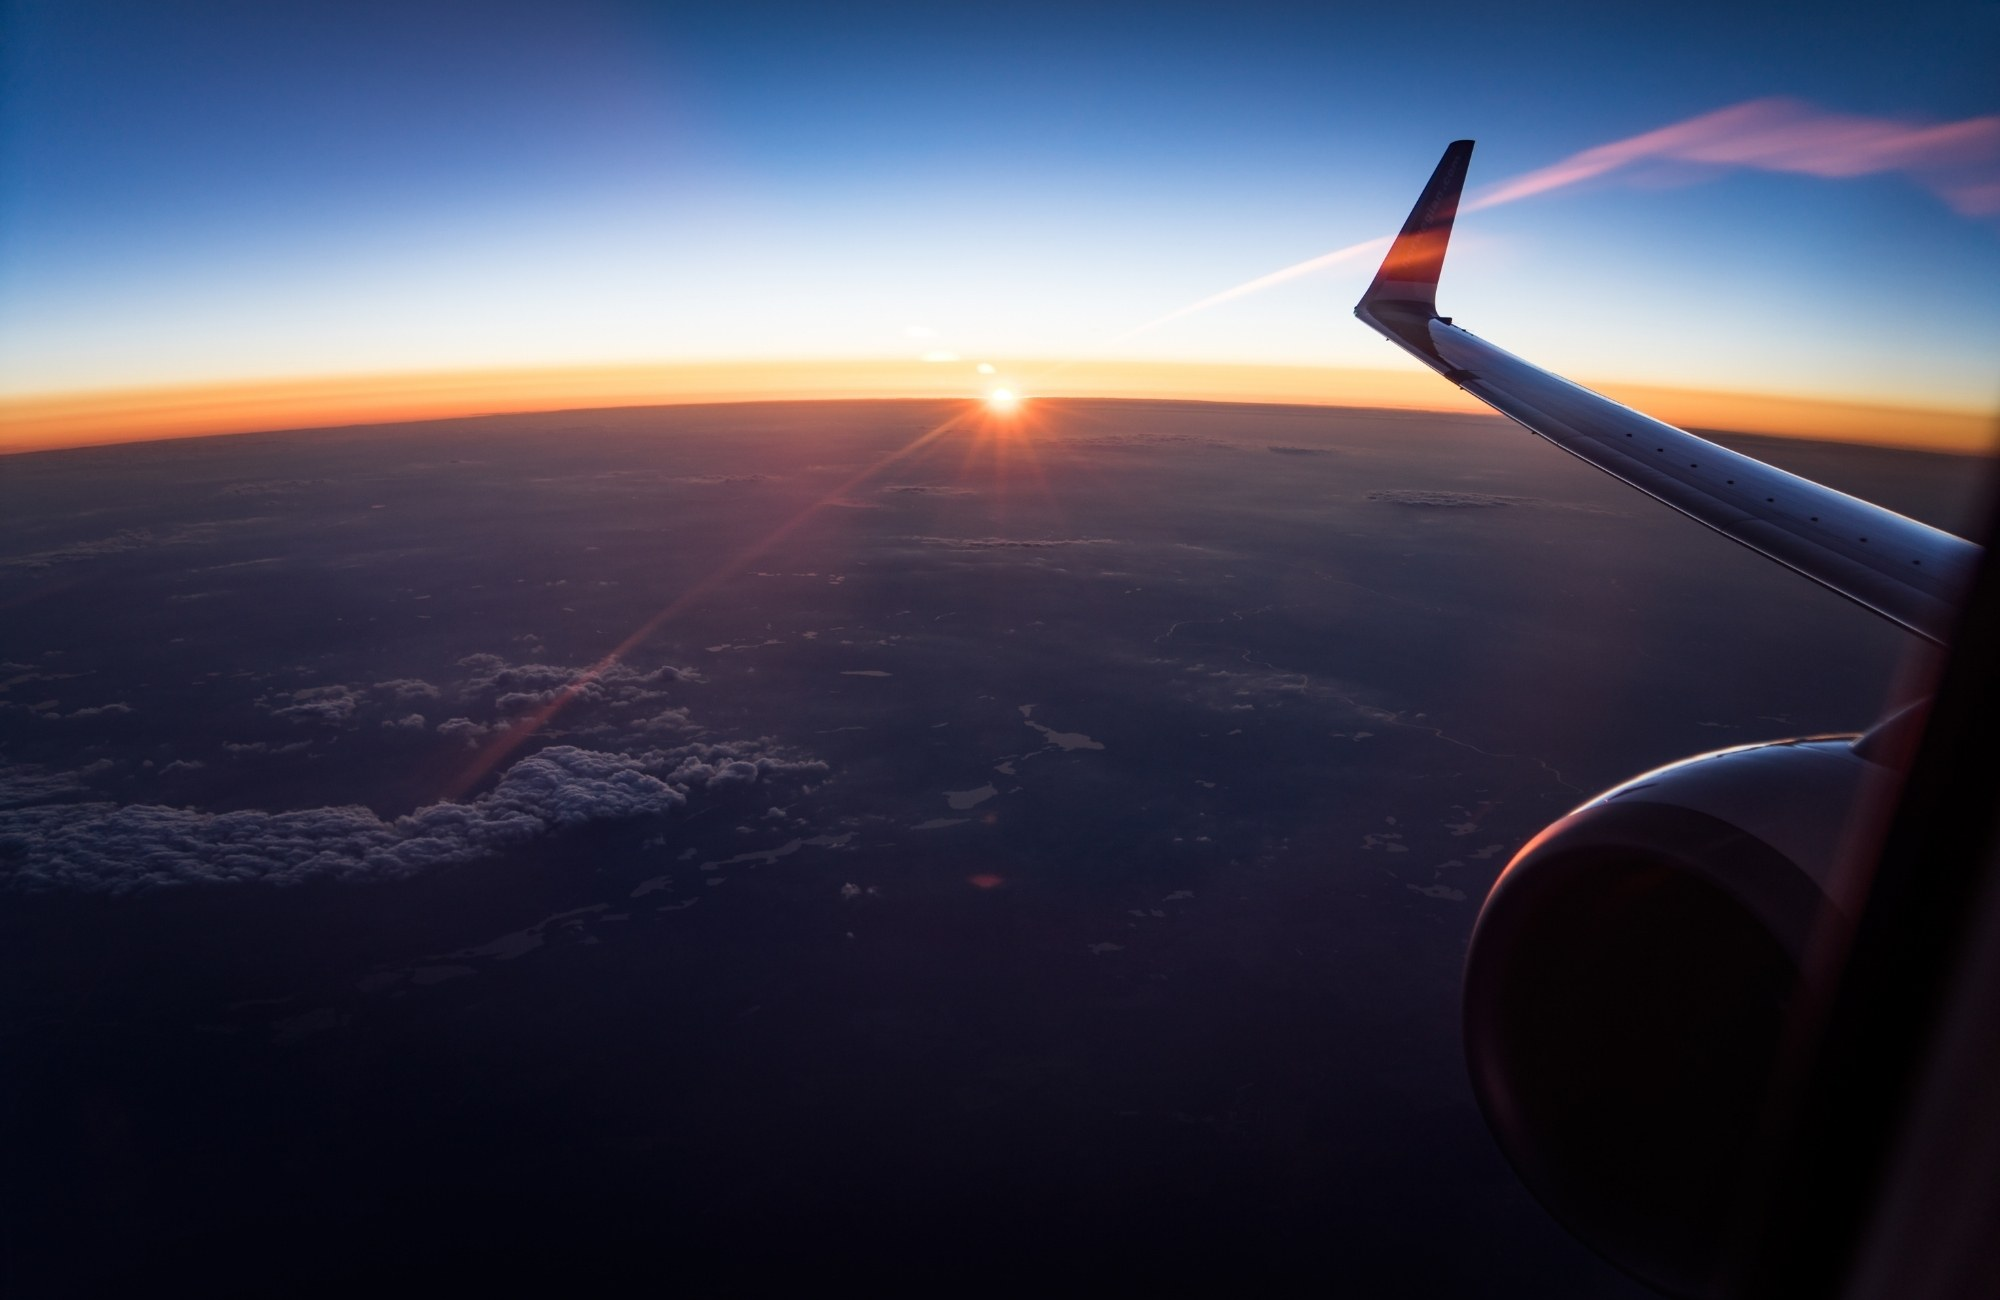 What it's like to travel during the COVID19 pandemic